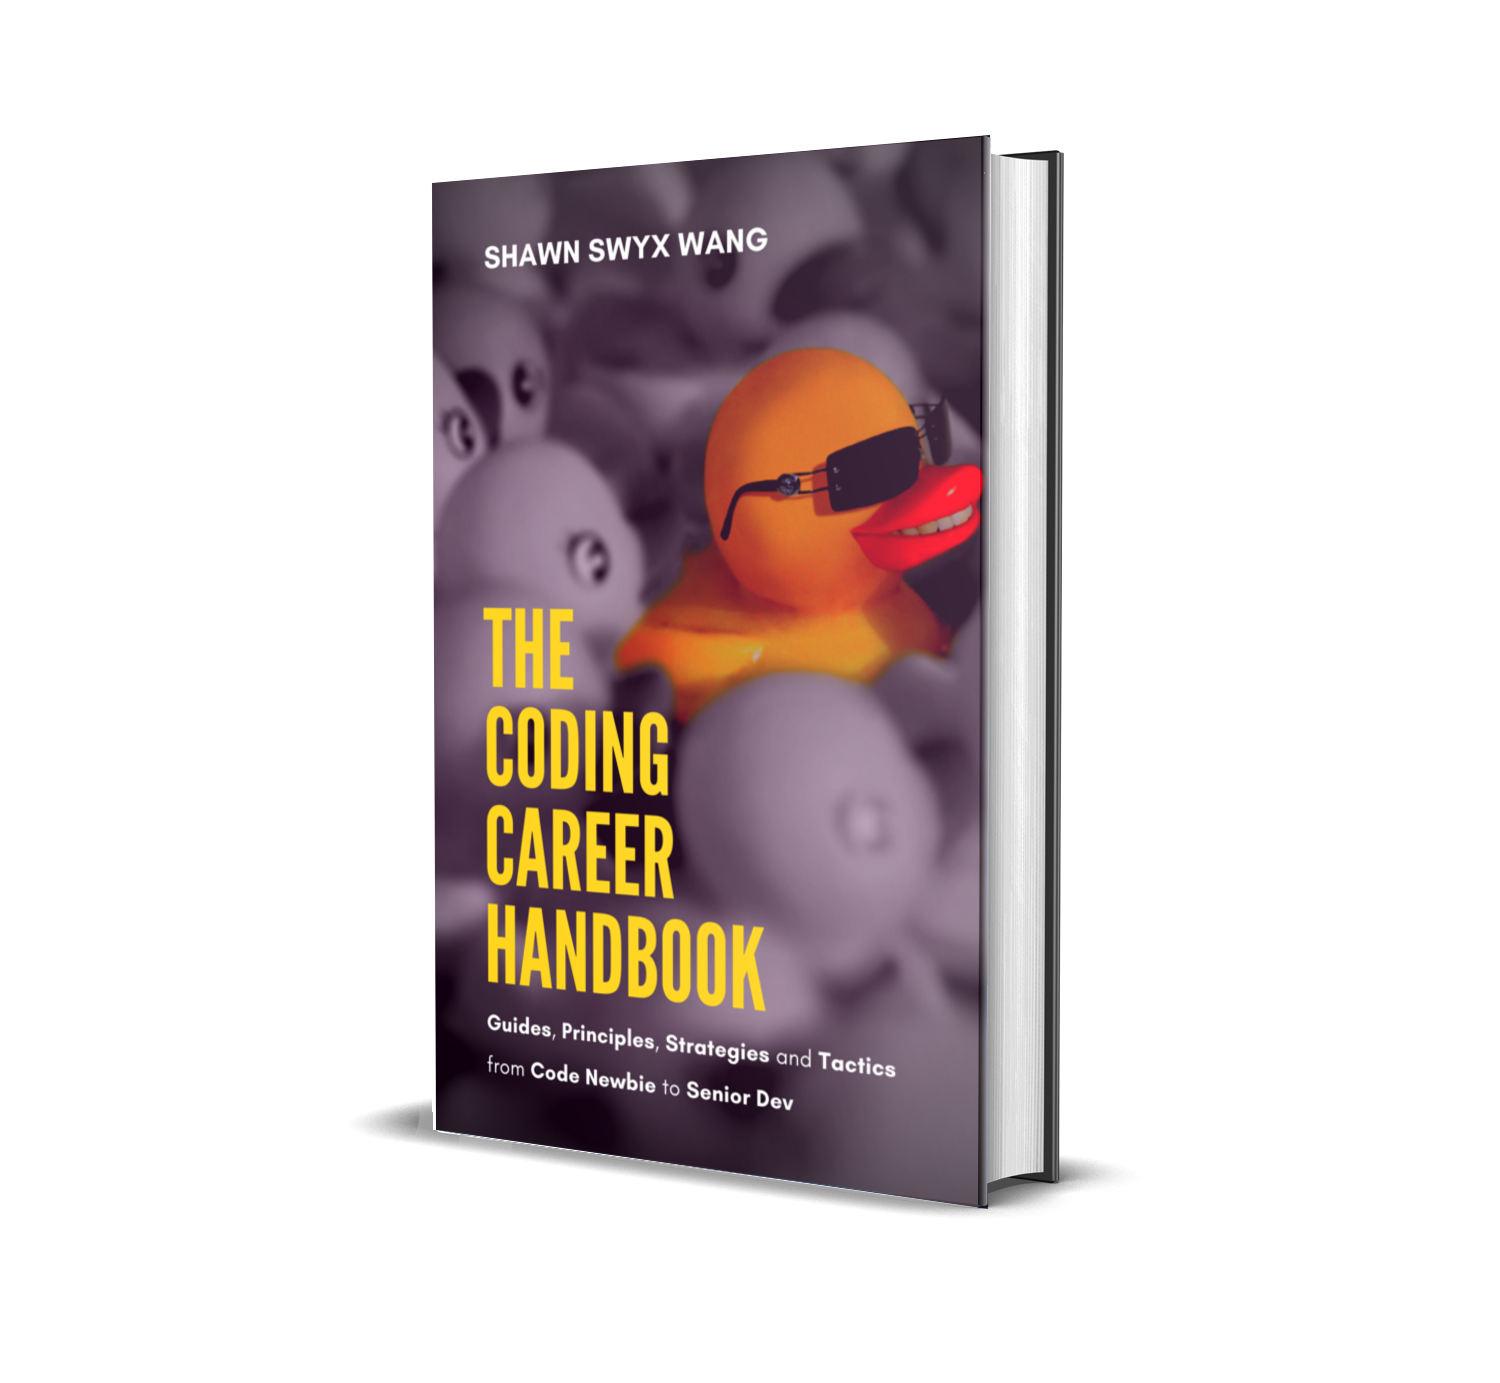 The Coding Career Handbook